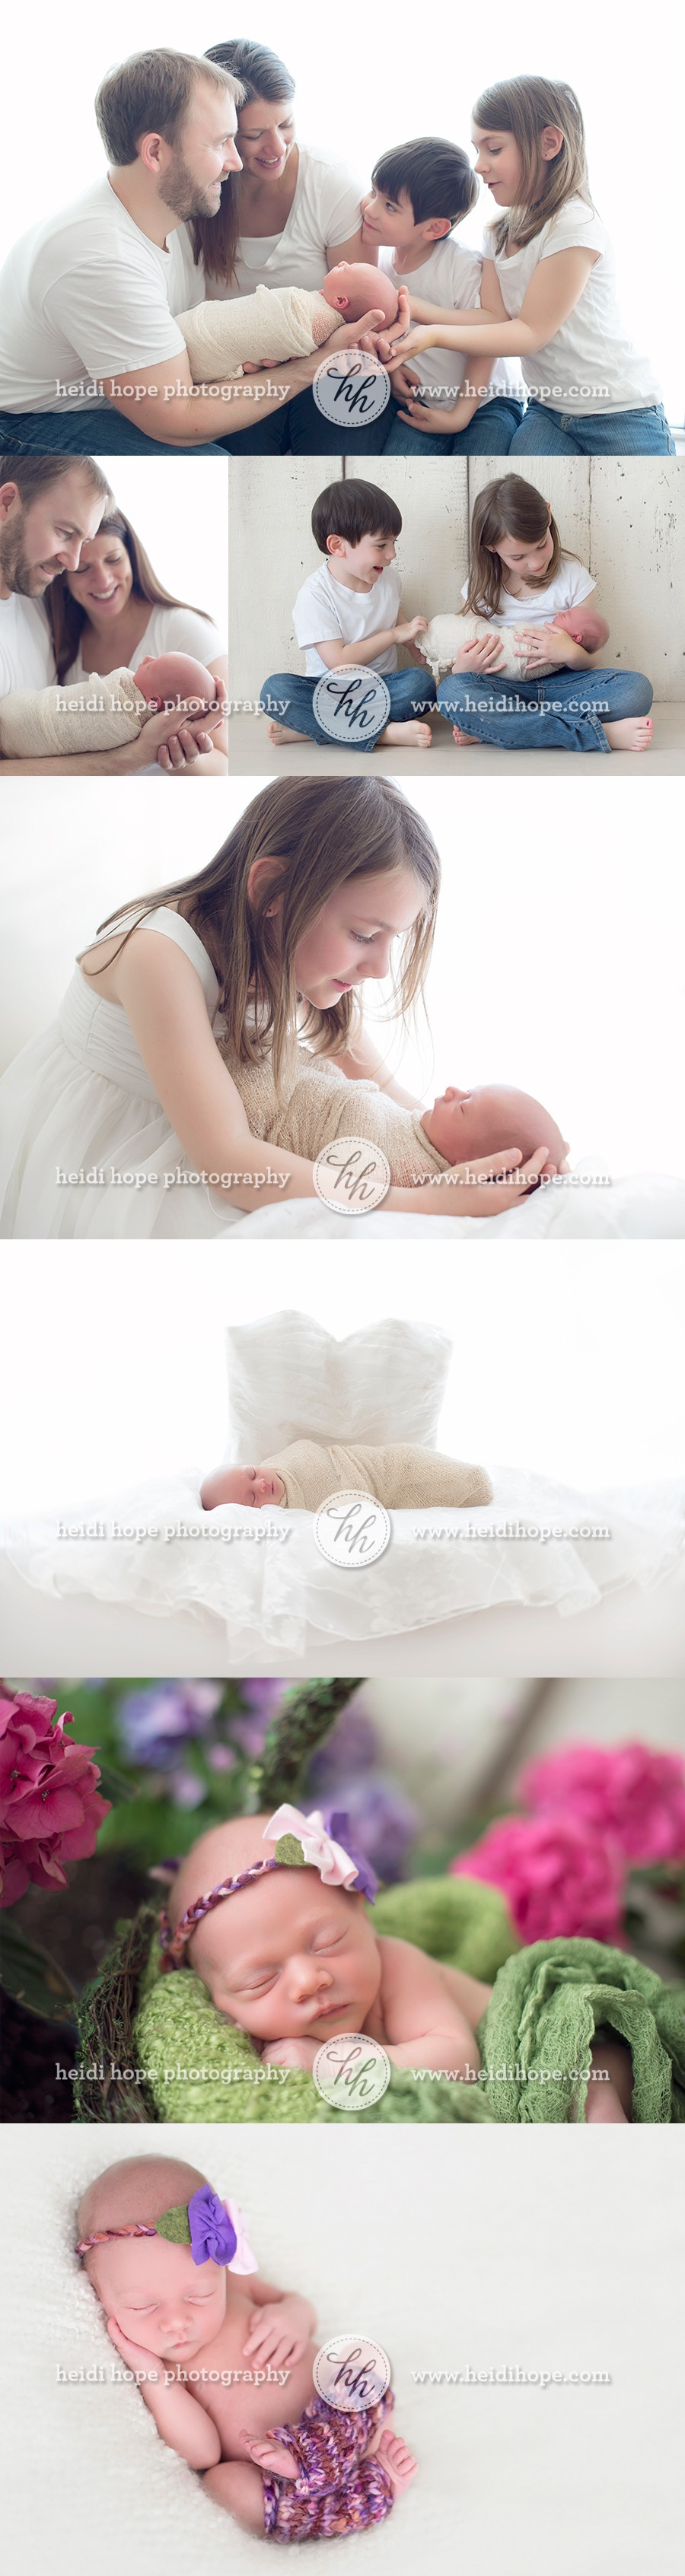 newborn-girl-and-family-boston-newborn-photographer-p